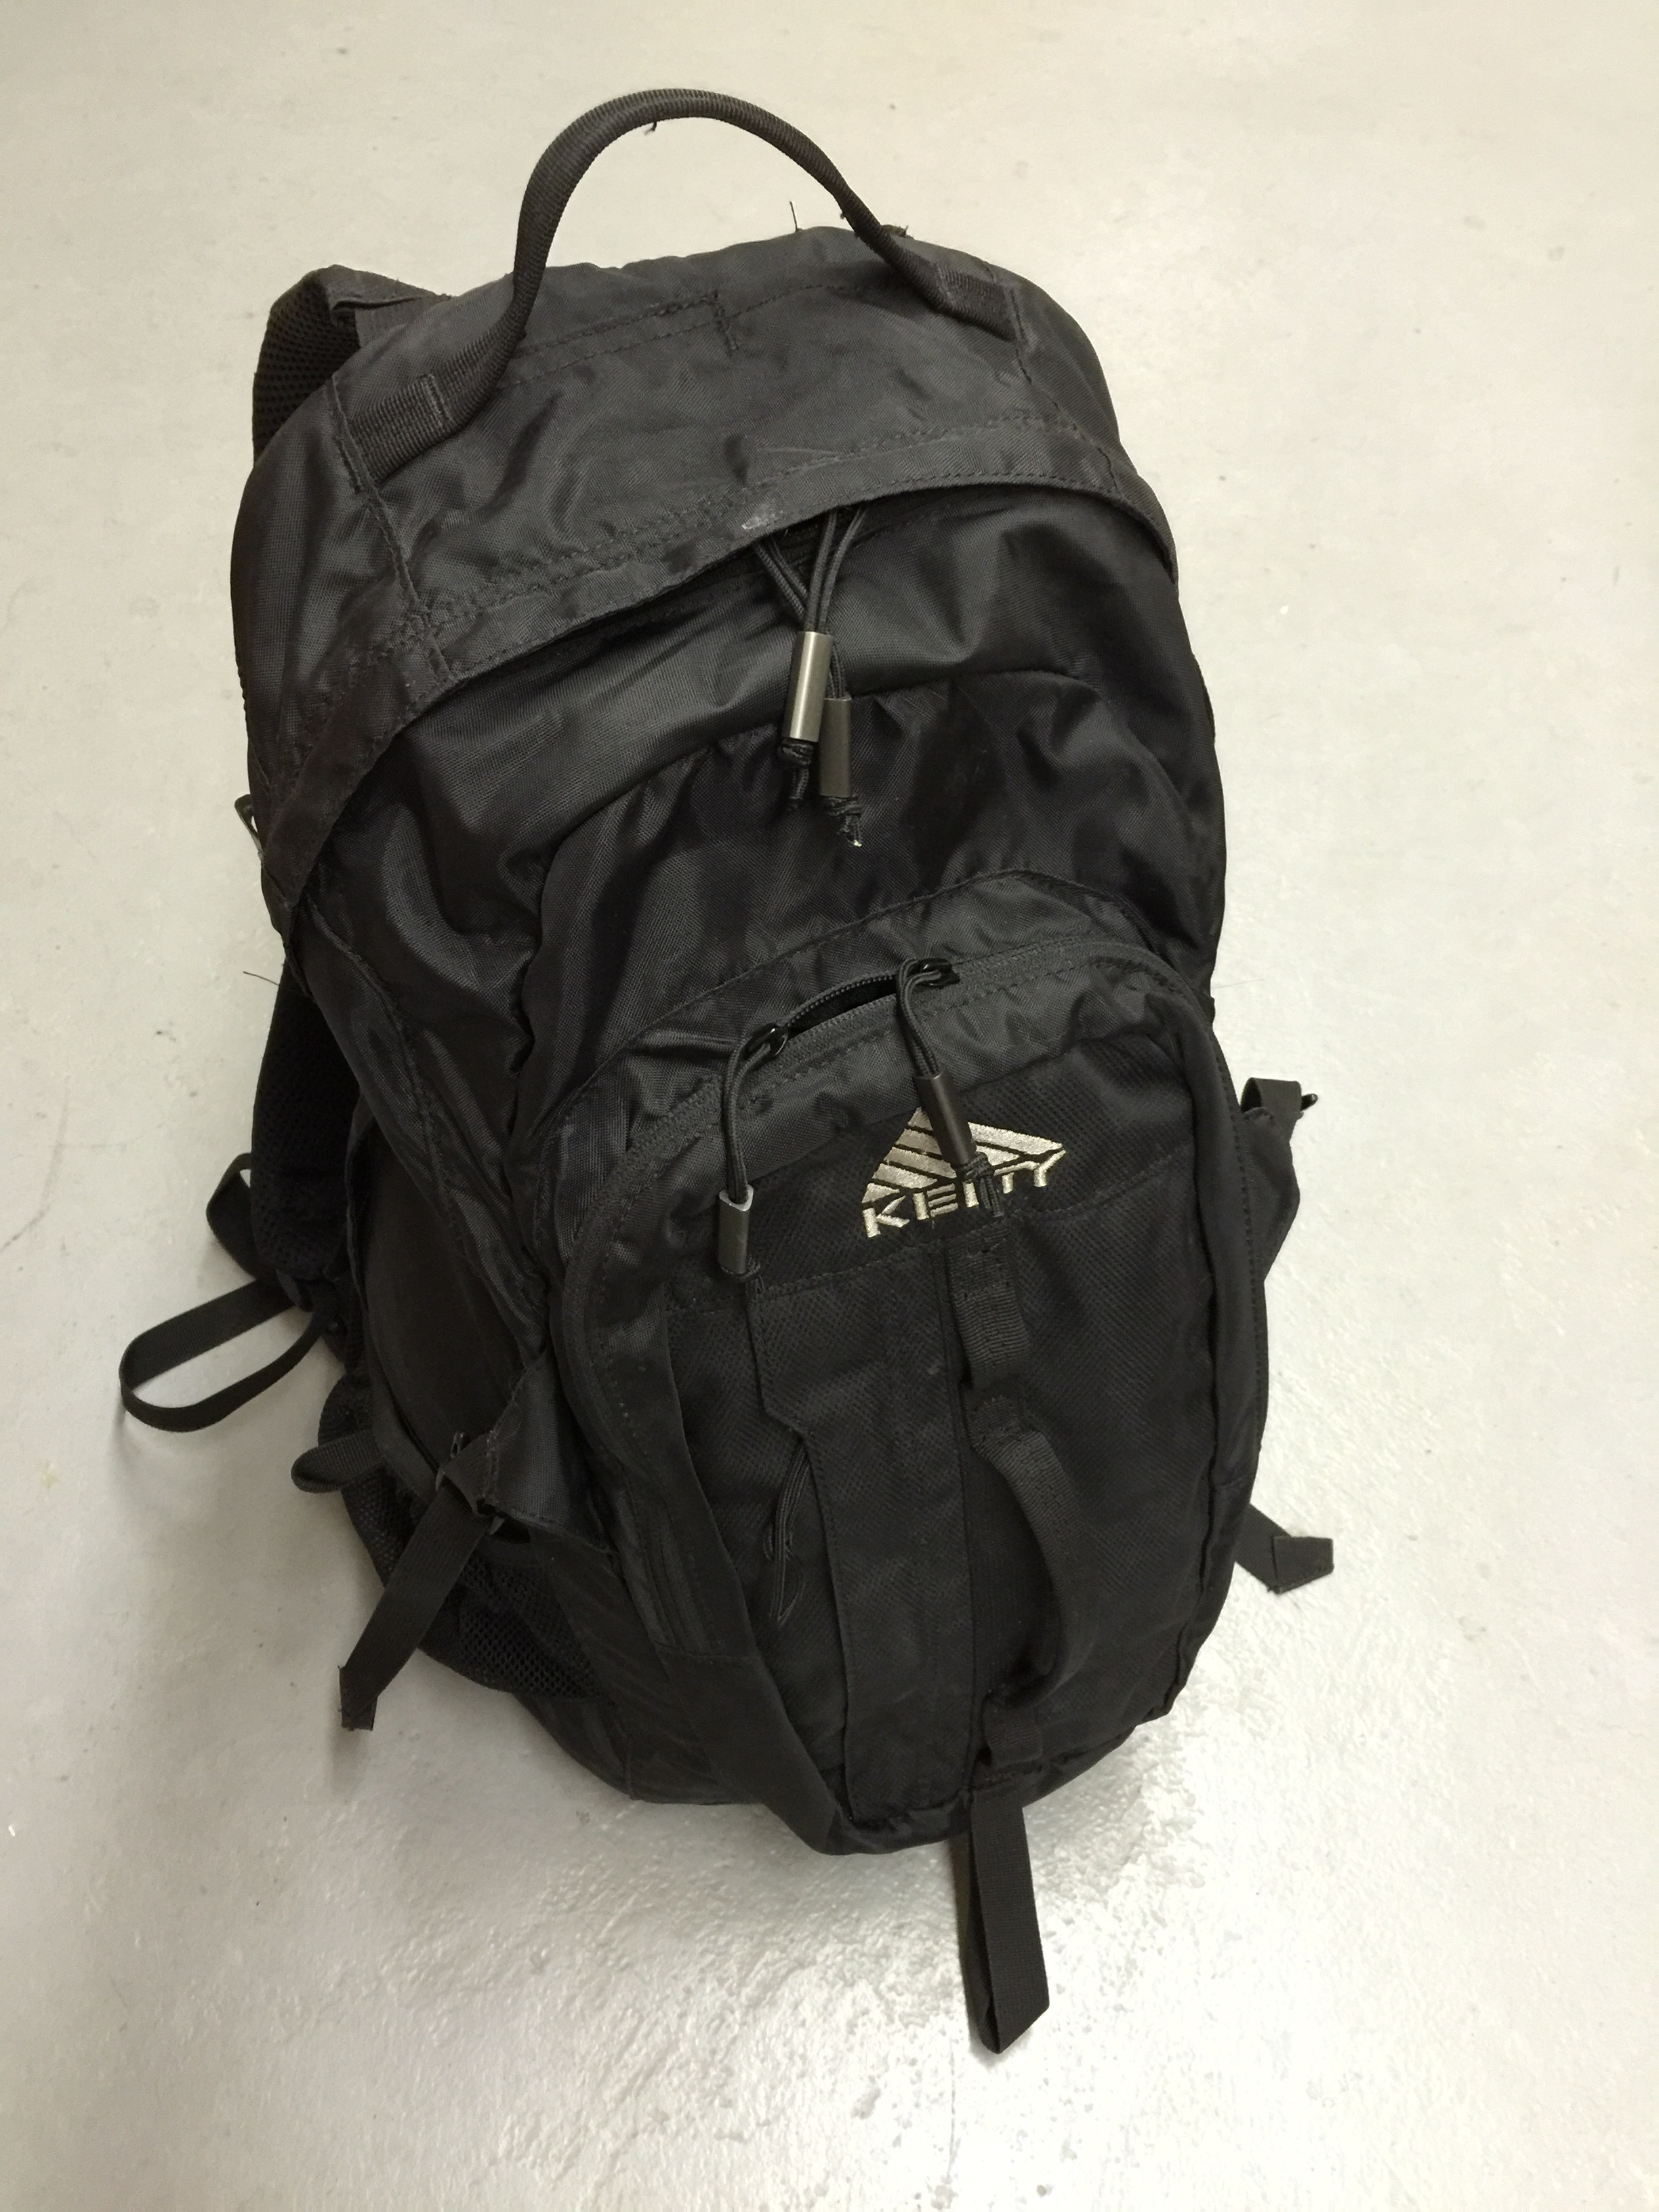 We filled this backpack with rocks, it weighed about 50 lbs. The soldiers kits came in to about 60lbs